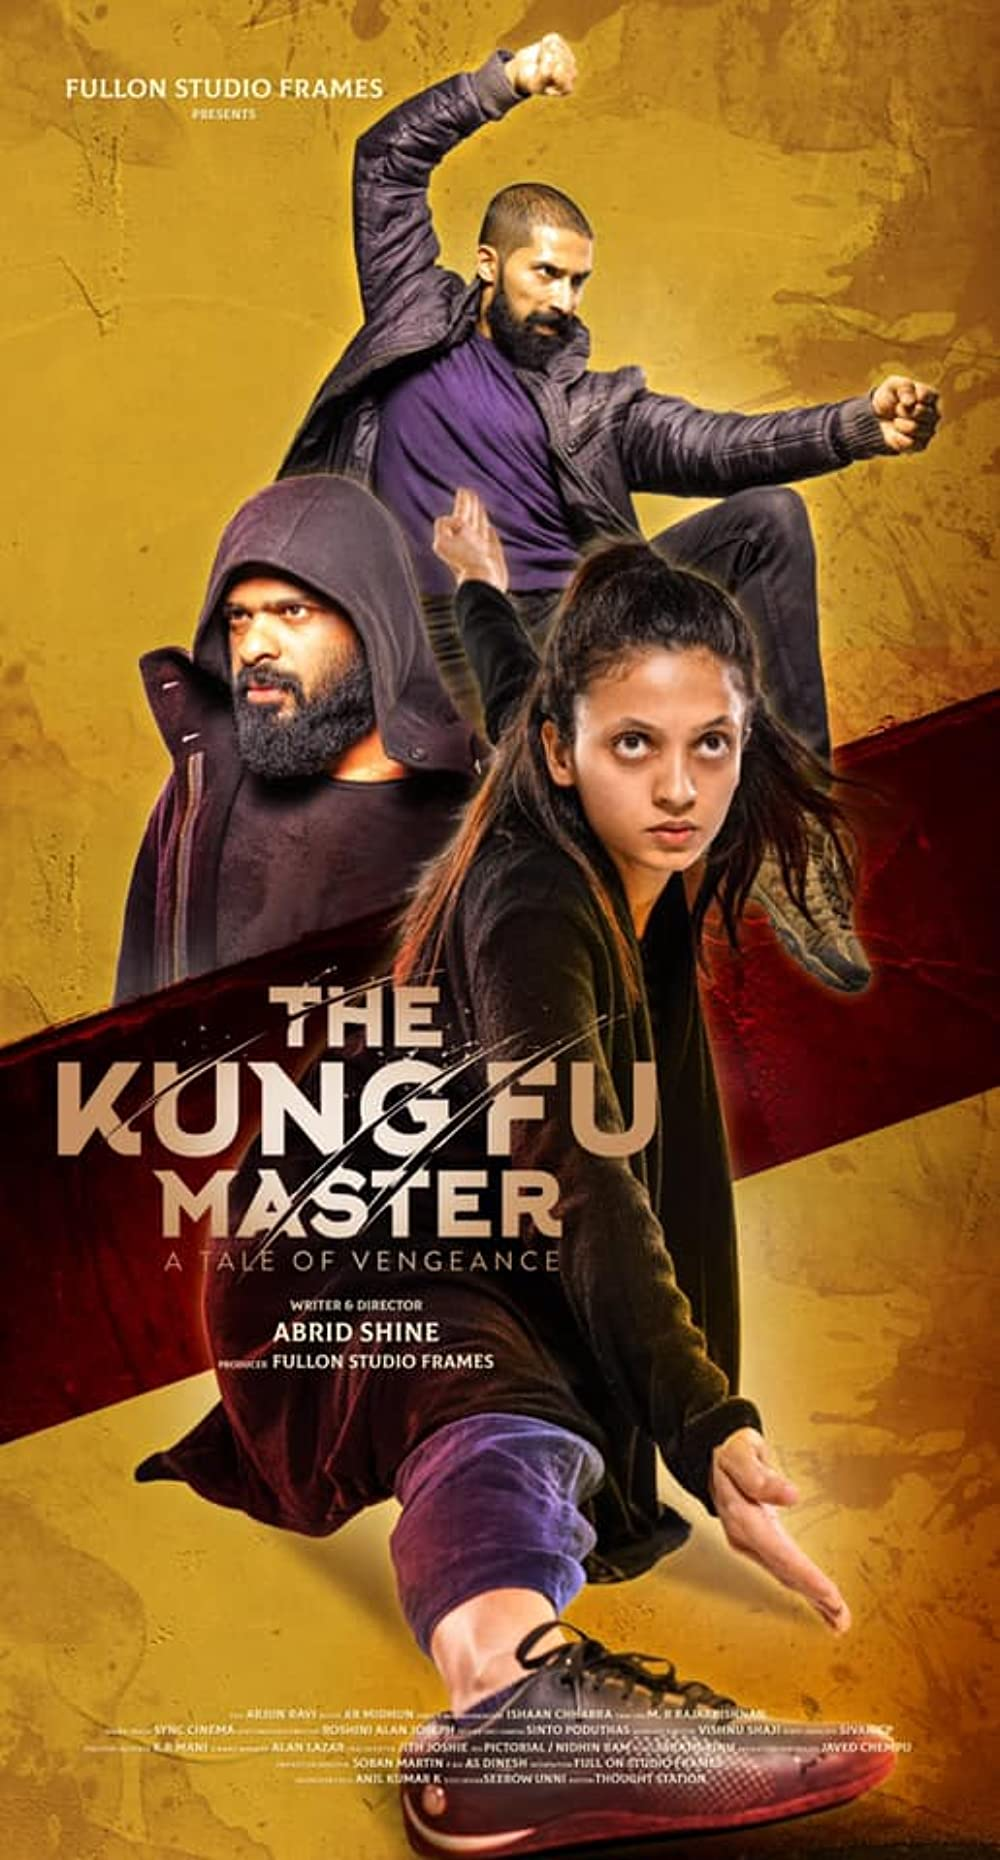 The Kung Fu Master 2020 Hindi Dubbed Dual Audio 720p HDTVRip 800MB x264 AAC